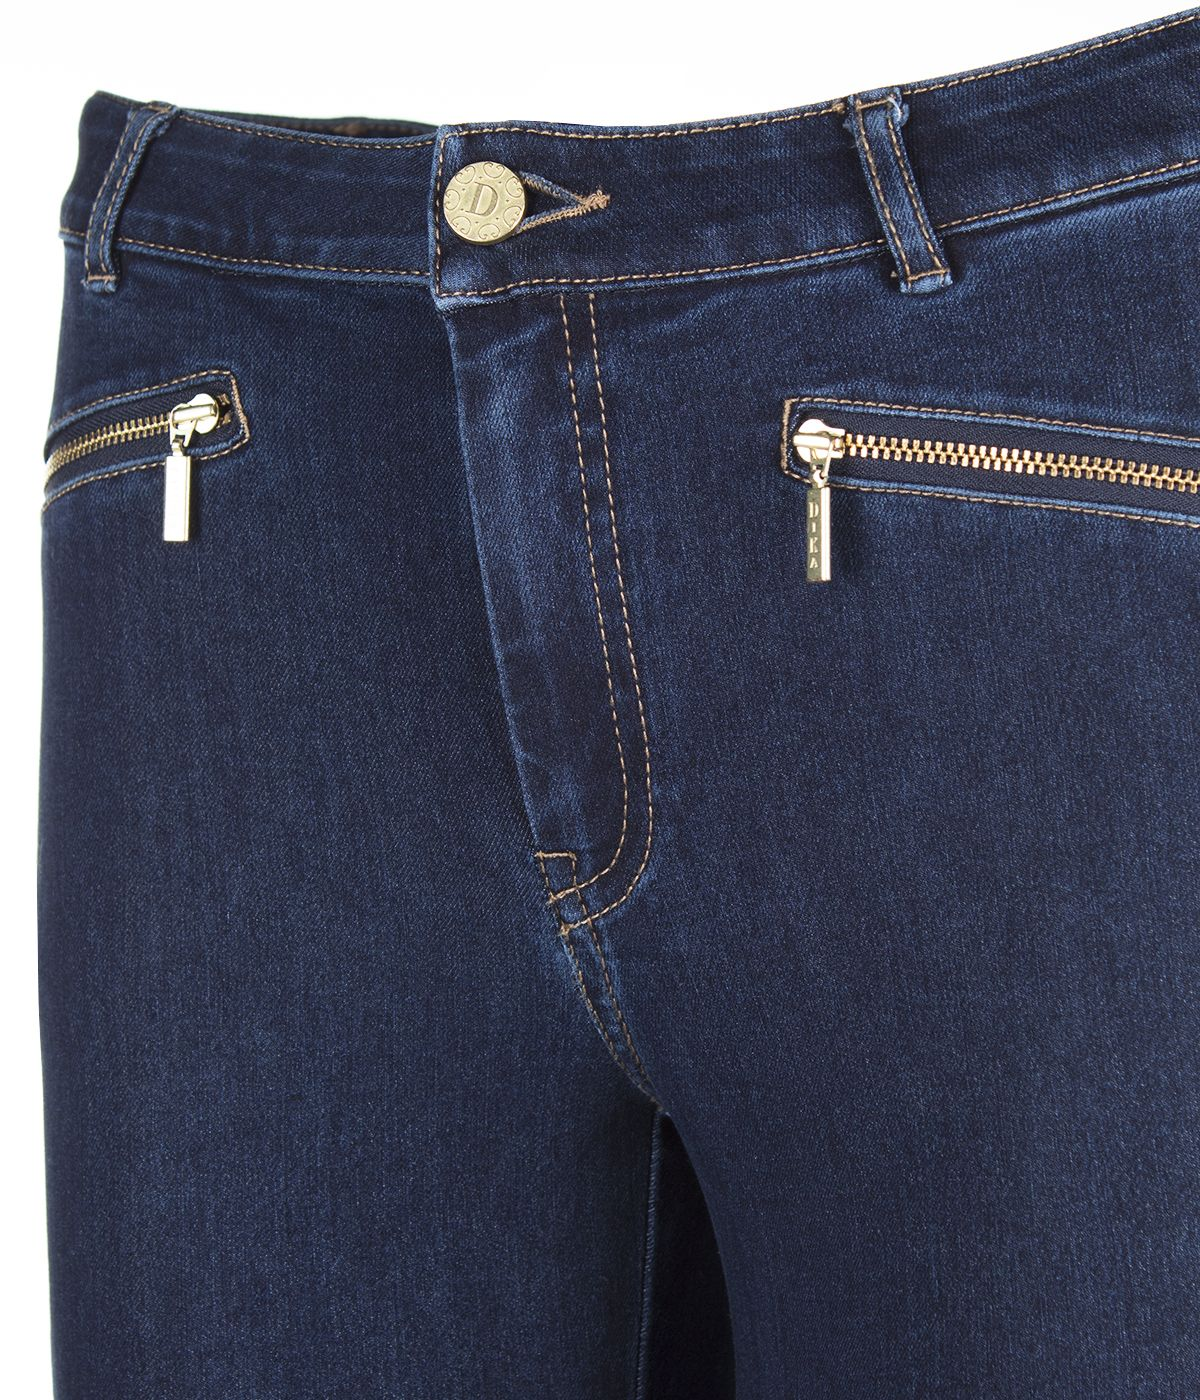 SLIM FIT JEANS WITH 2 ZIPPERS 2